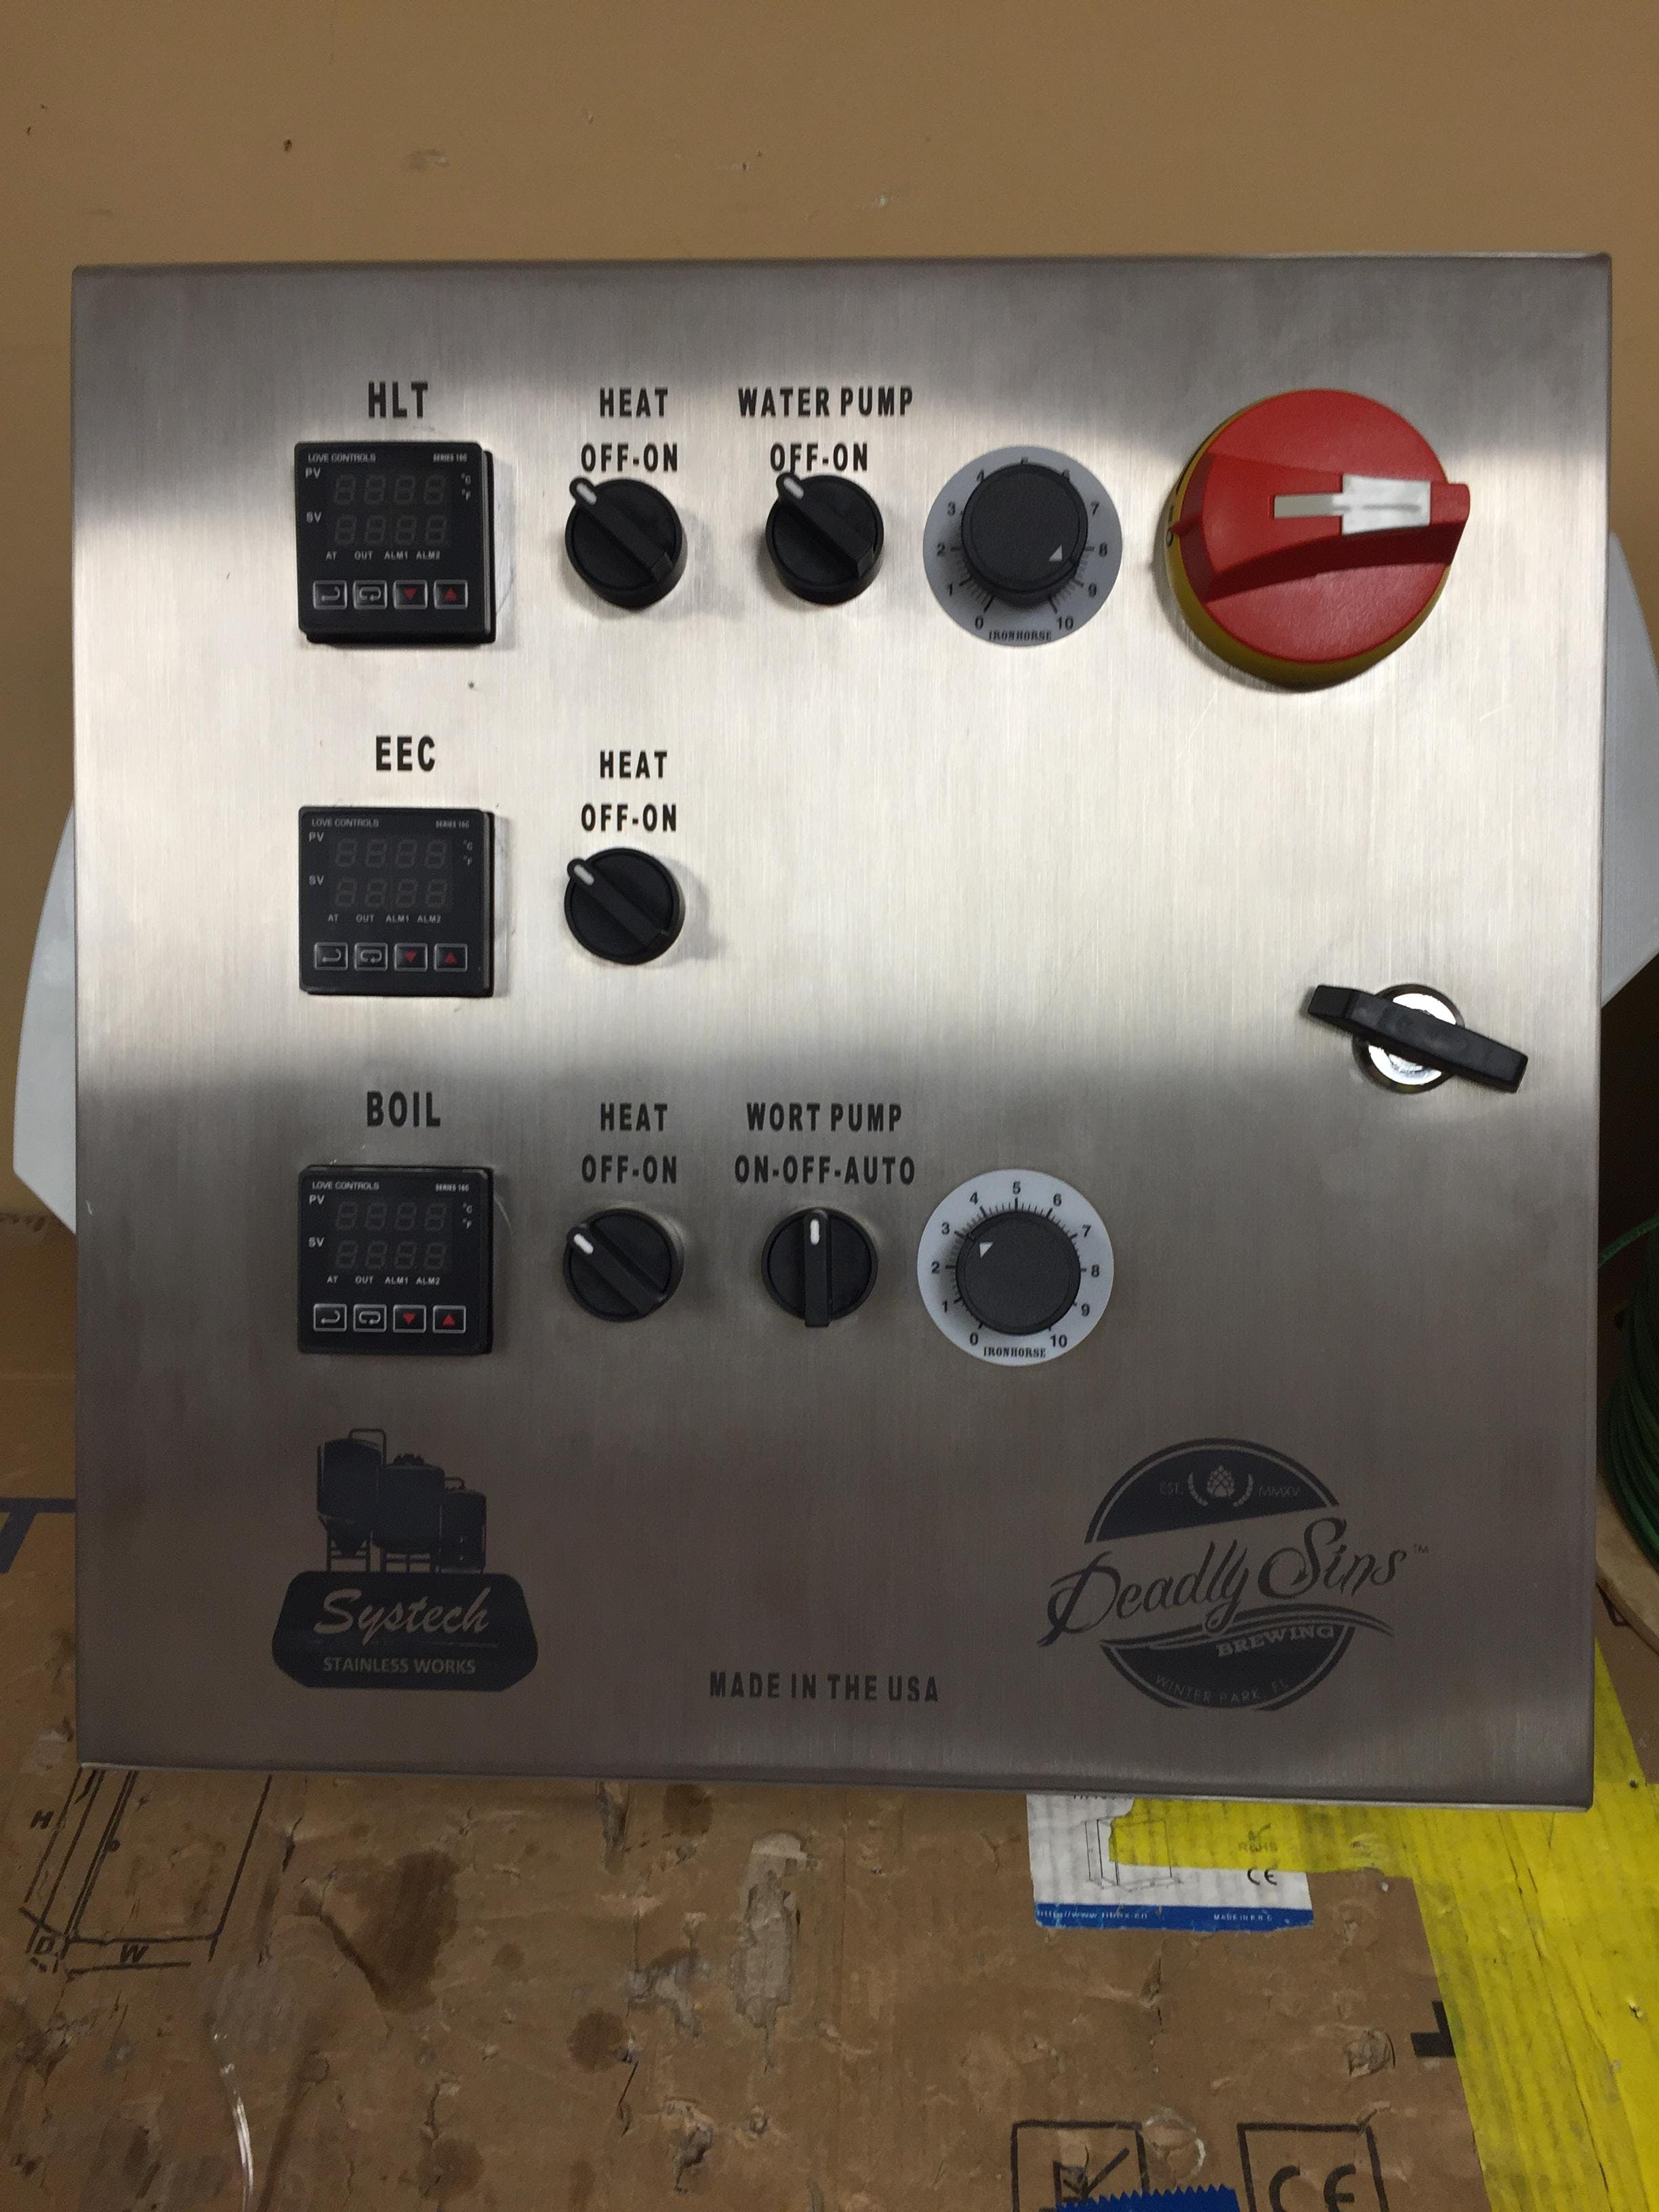 Systech Panel Control System sold by Systech Stainless Works, LLC [CLOSED]